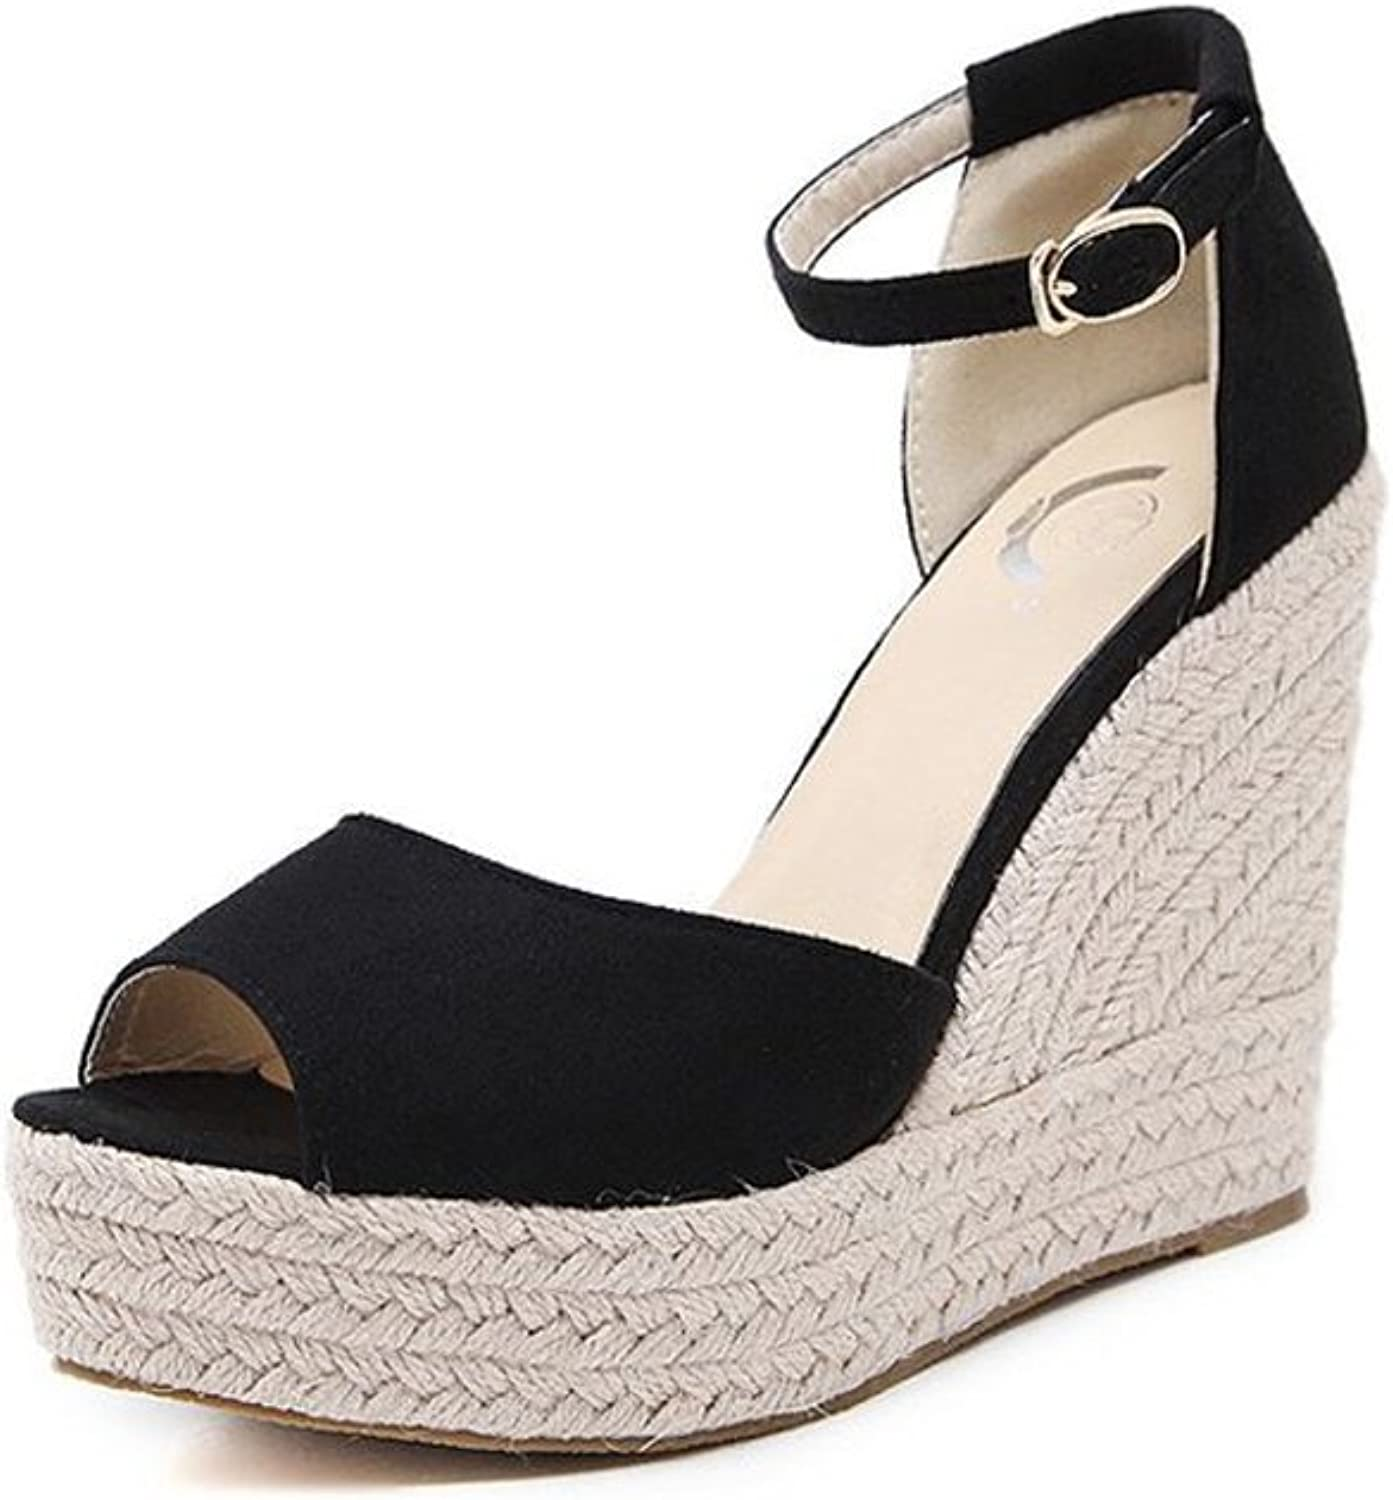 Womens Wedge Sandals Slip On Ankle Beach shoes Dressy Sandals